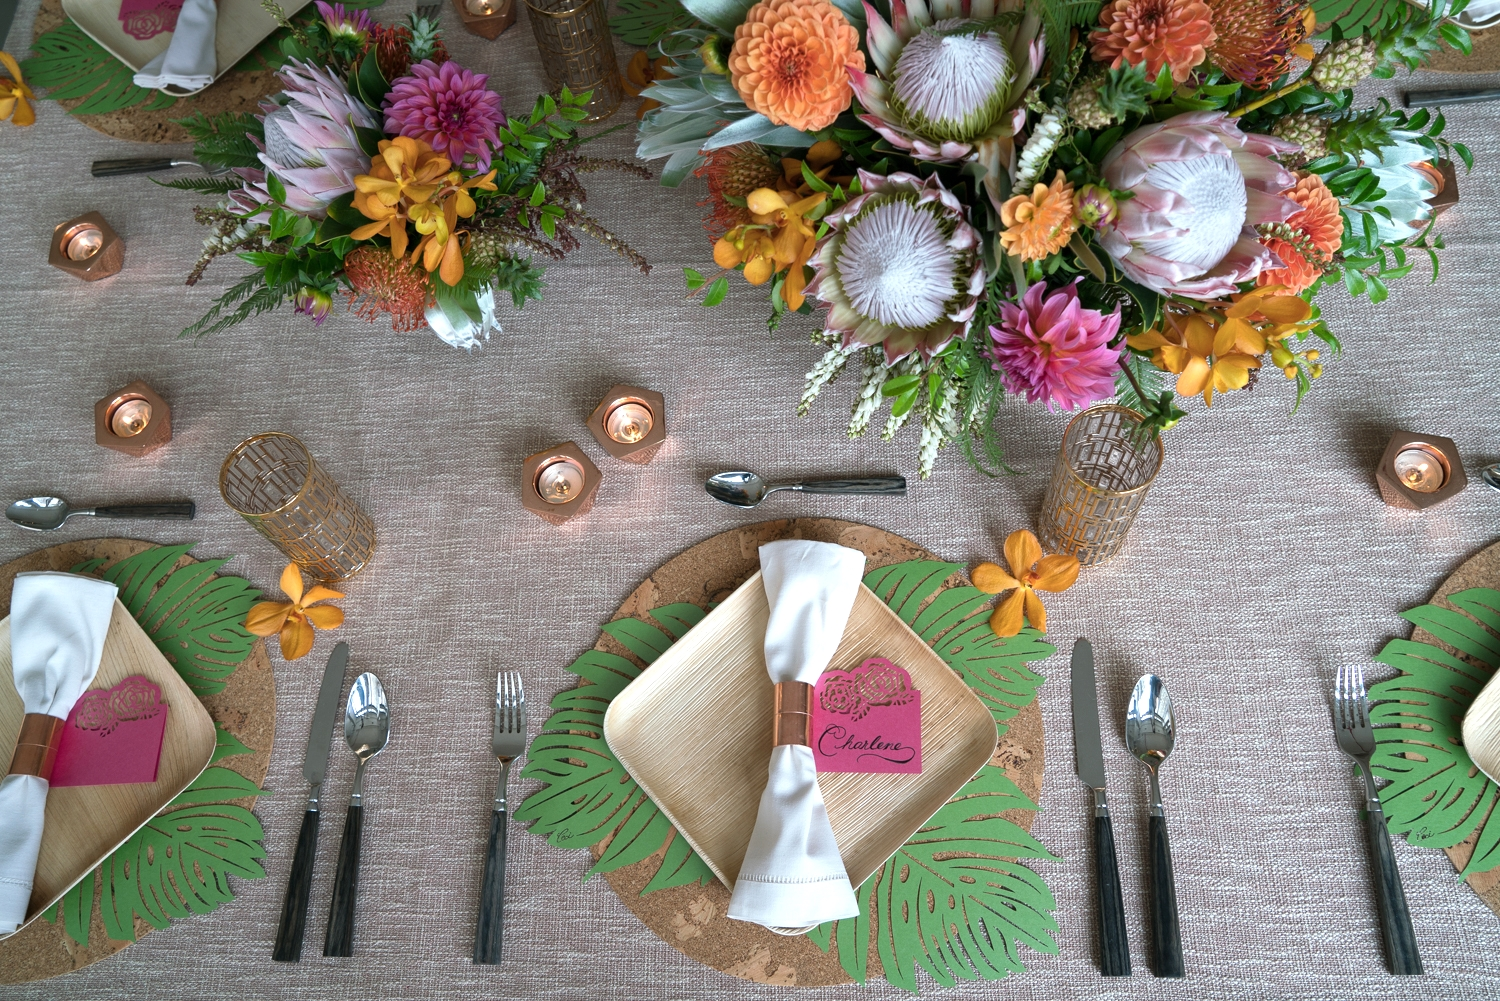 Ceci_New_York_Entertaining_Style_Tinsel_Twine_Design_Placemats_Tabletop_Decor_Summertime_Fun11.jpg